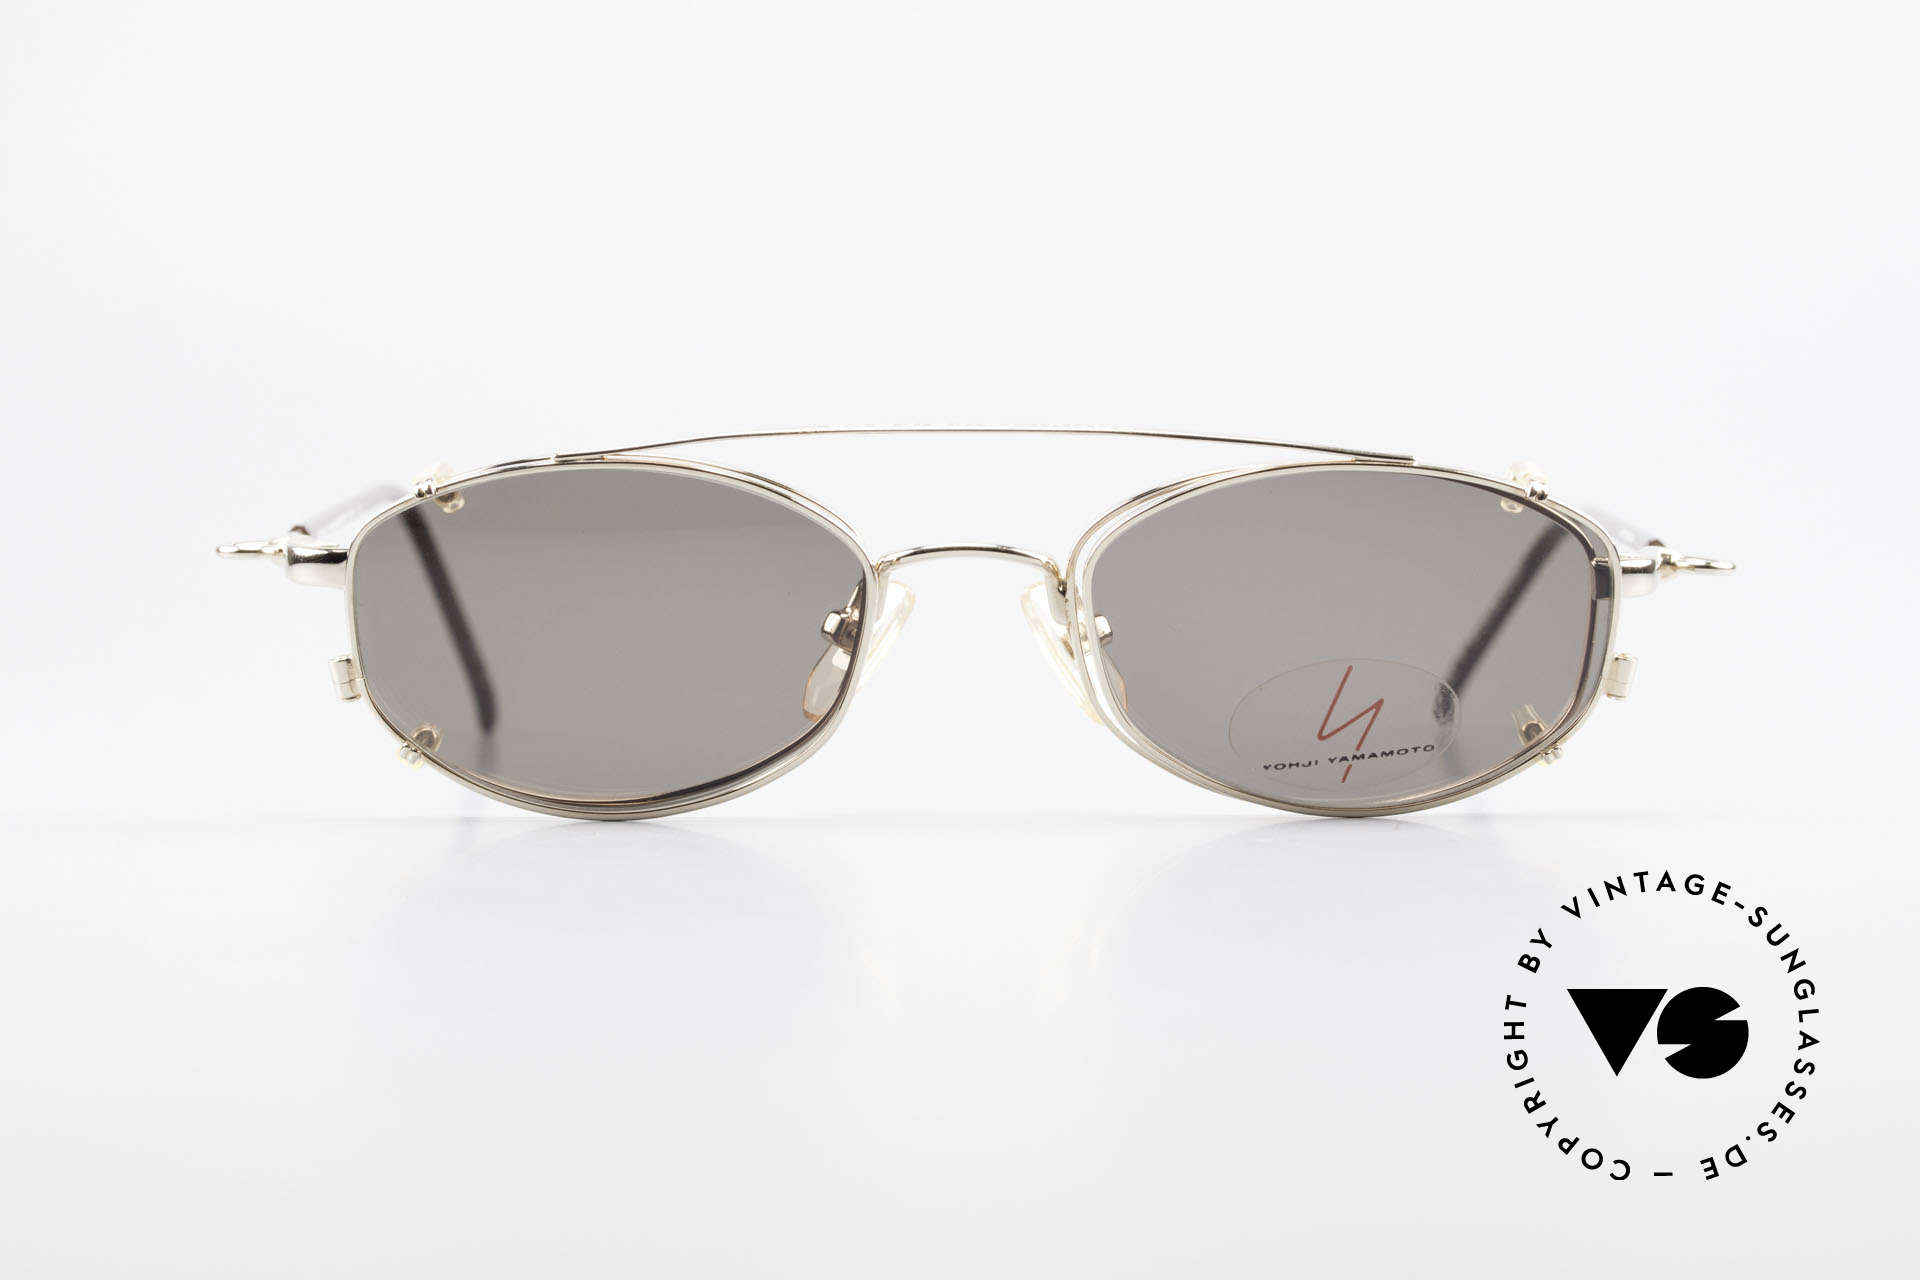 Yohji Yamamoto 51-7211 Gold Plated Frame With Clip On, outstanding quality from the 1990's, made in JAPAN, Made for Men and Women